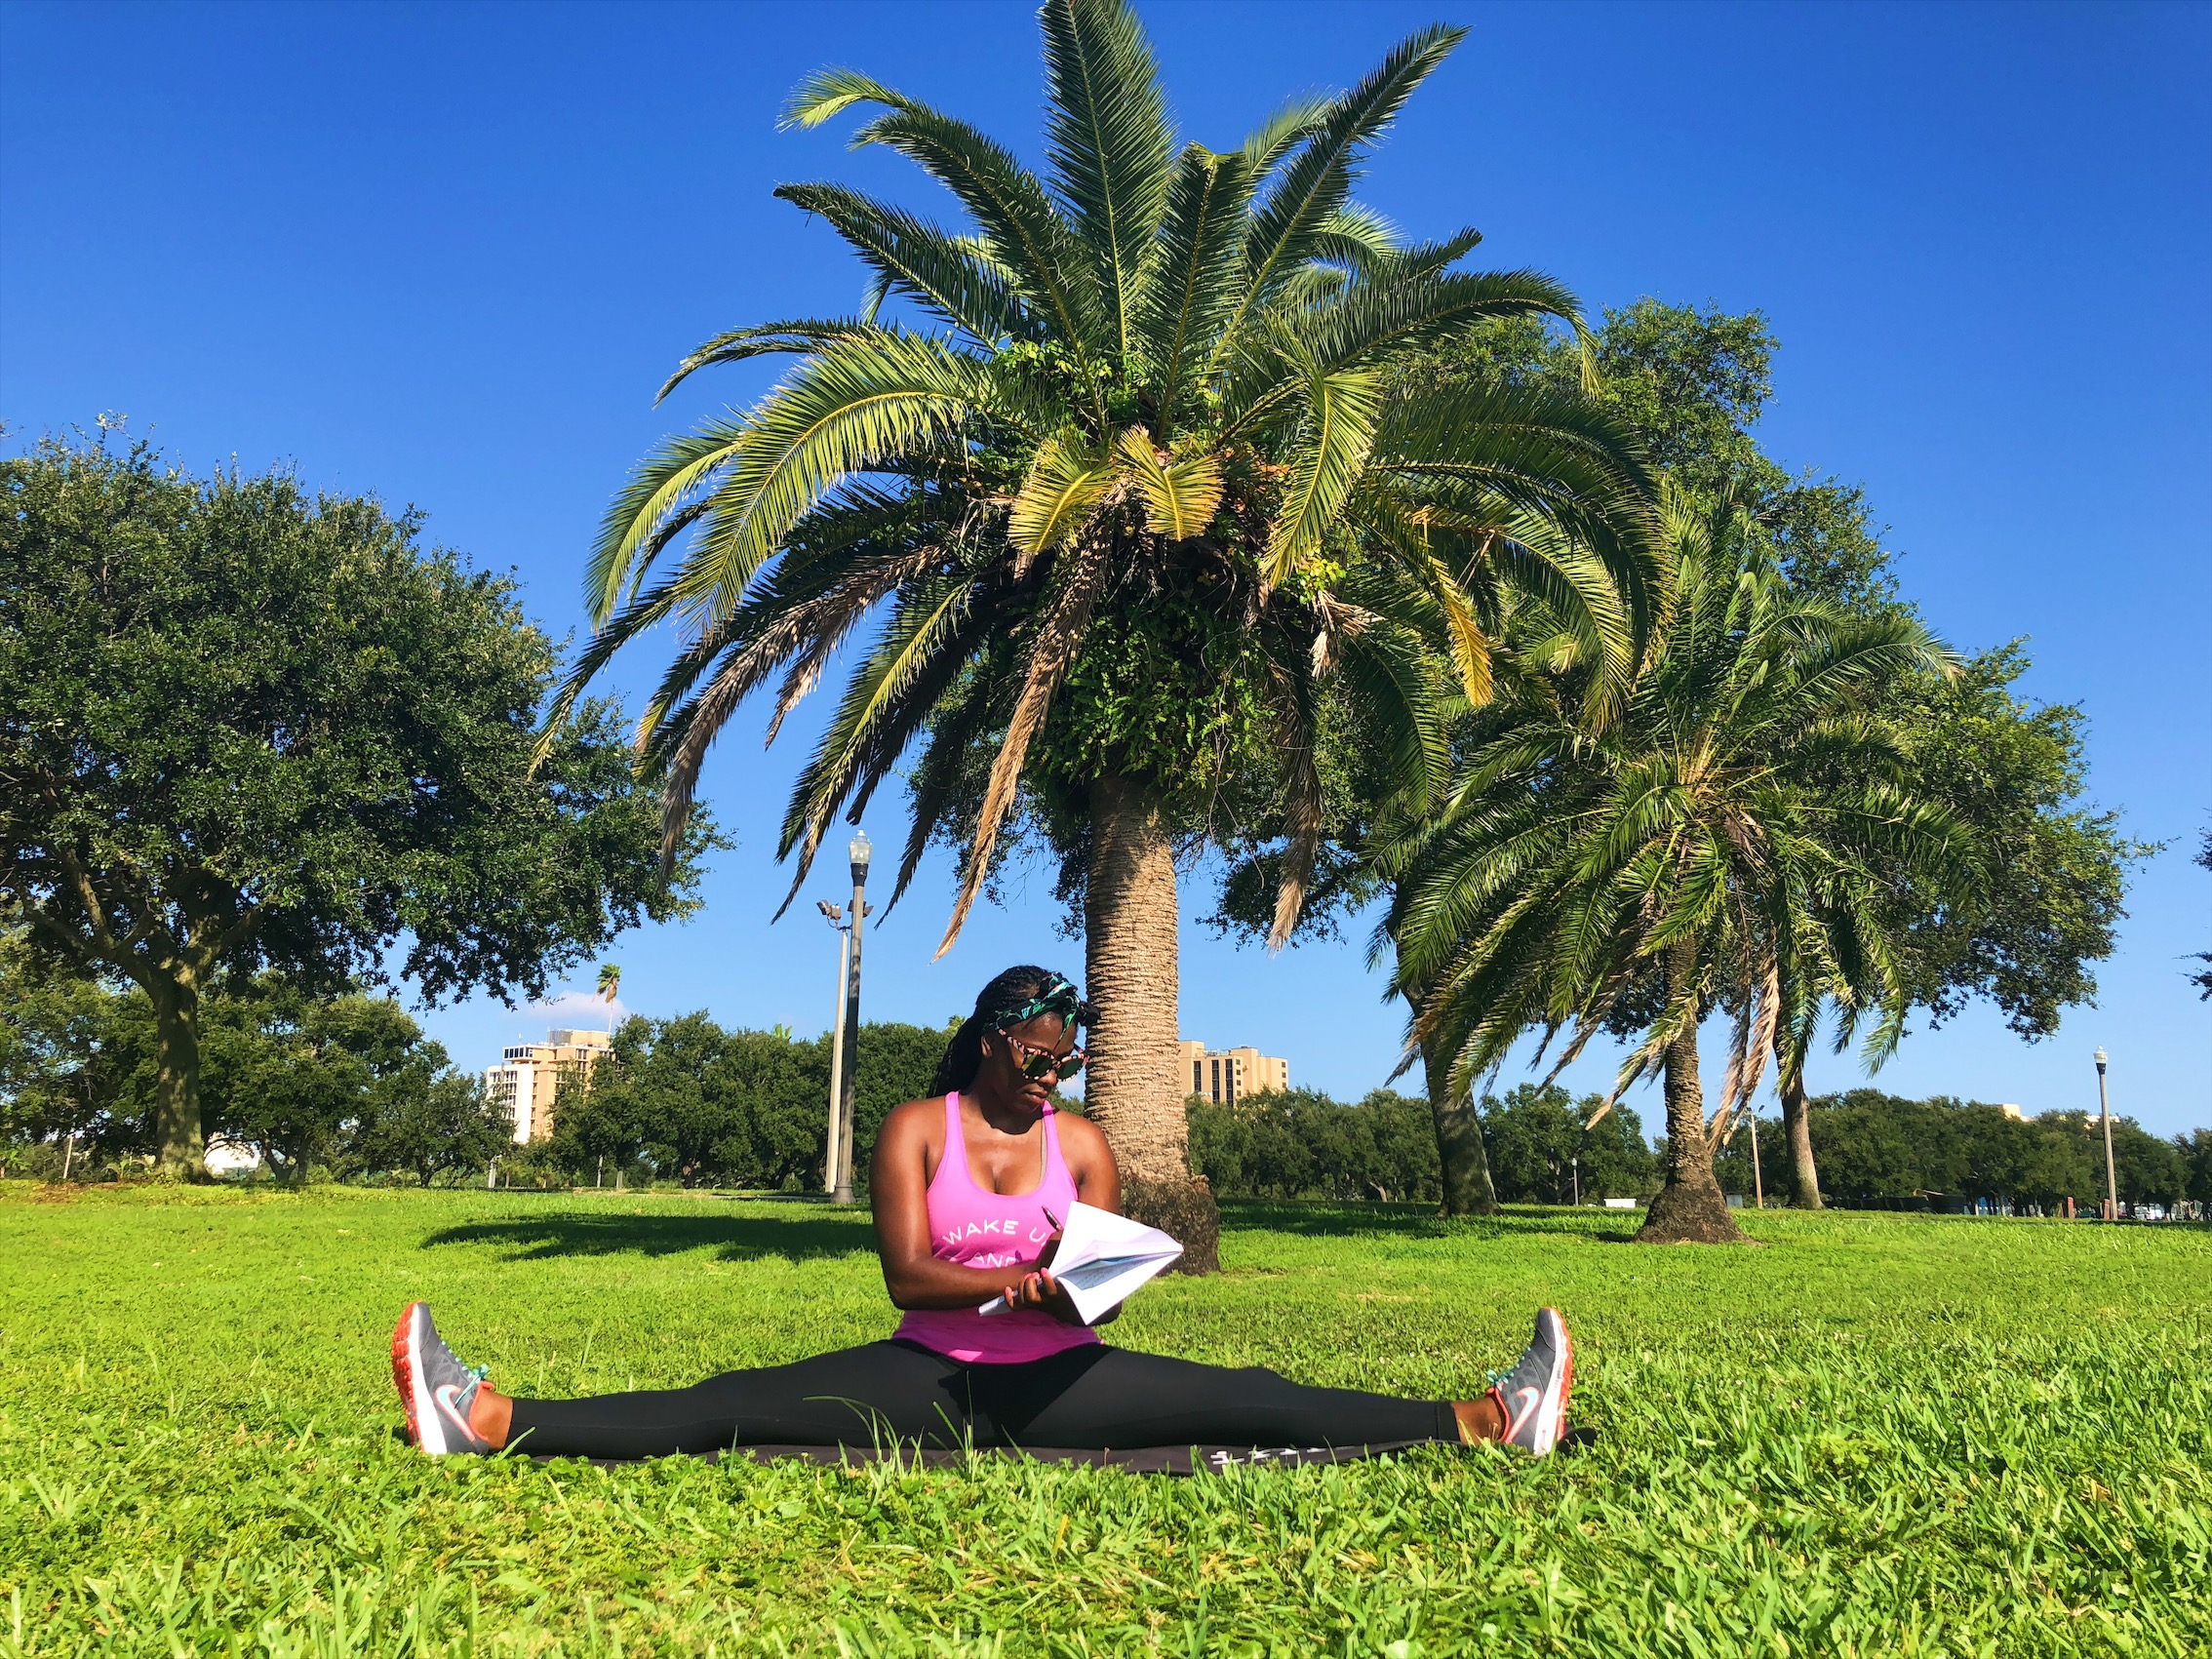 Use yoga to strengthen your minD bodY & souL! - Use tools and resources to create a financial plan and get to EXECUTING!